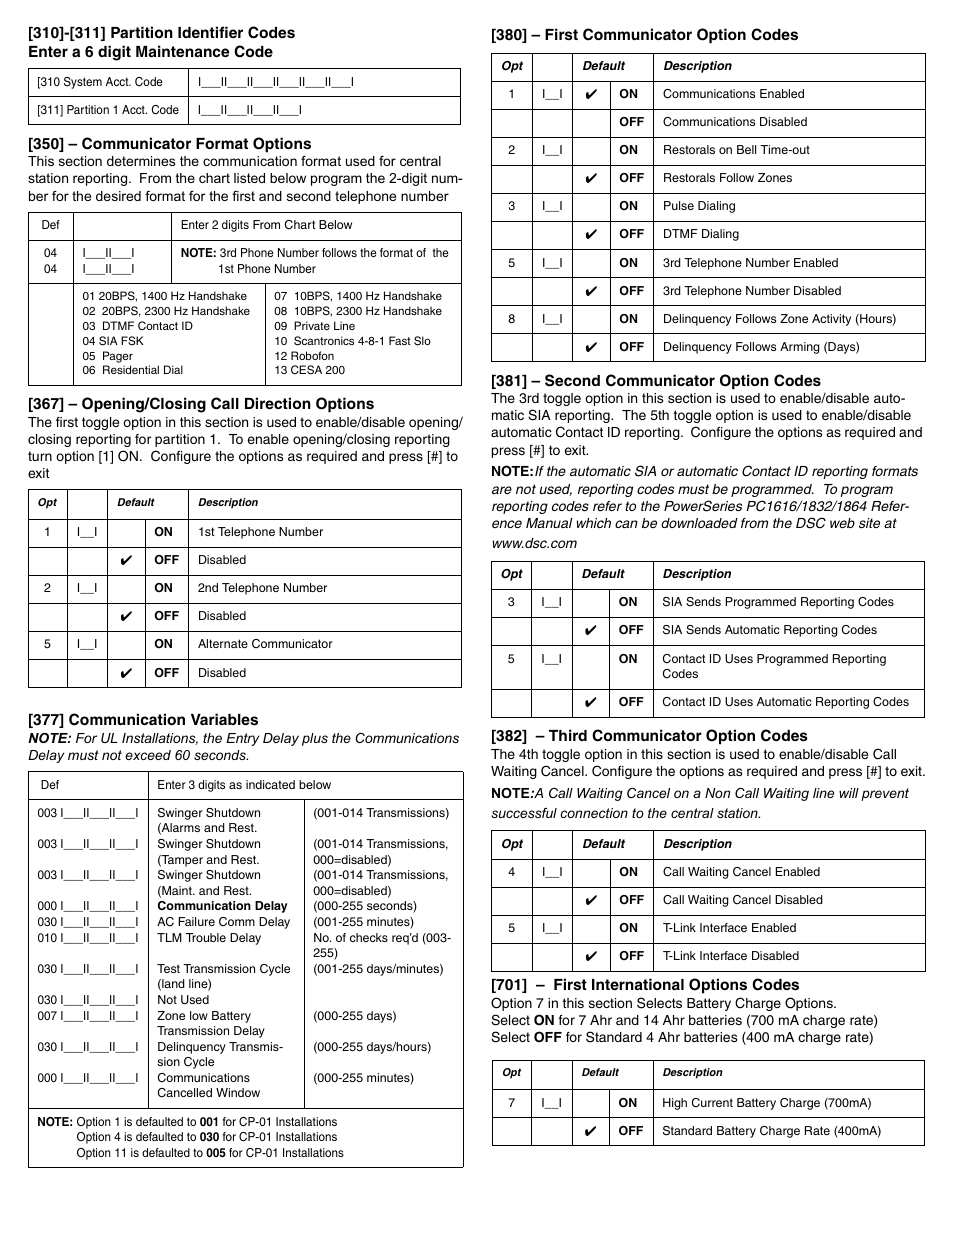 DSC POWERSERIES PC1616 User Manual | Page 12 / 16 | Also for